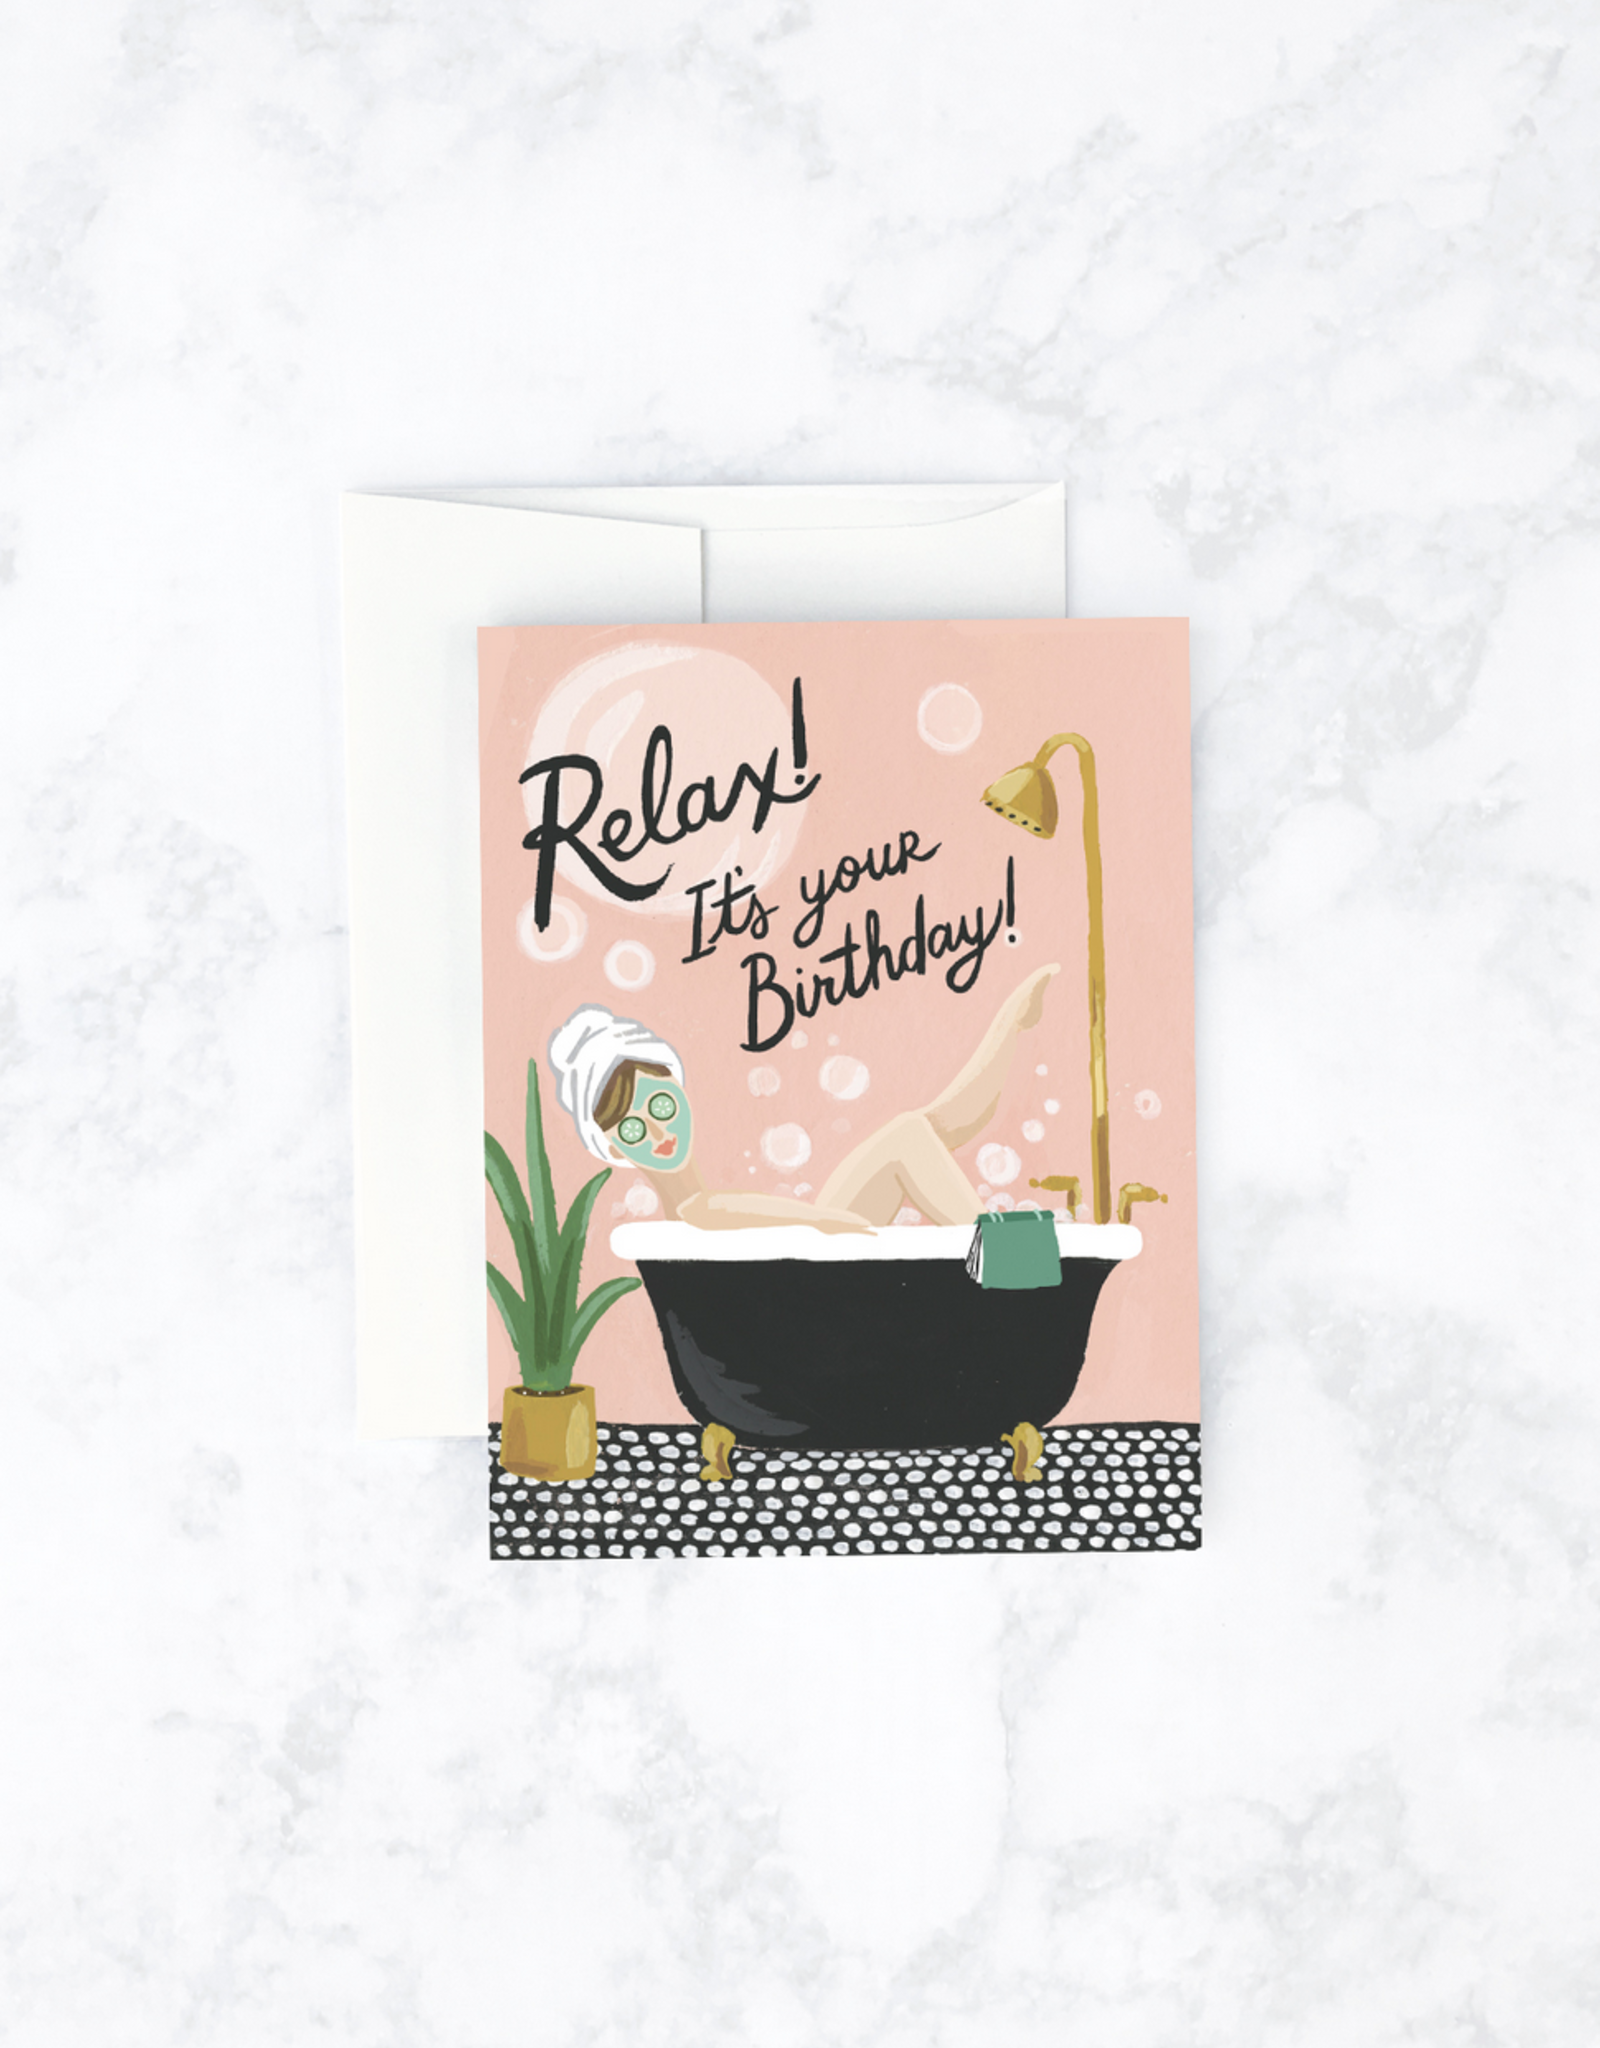 Relax! It's Your Birthday Bubble Bath Greeting Card